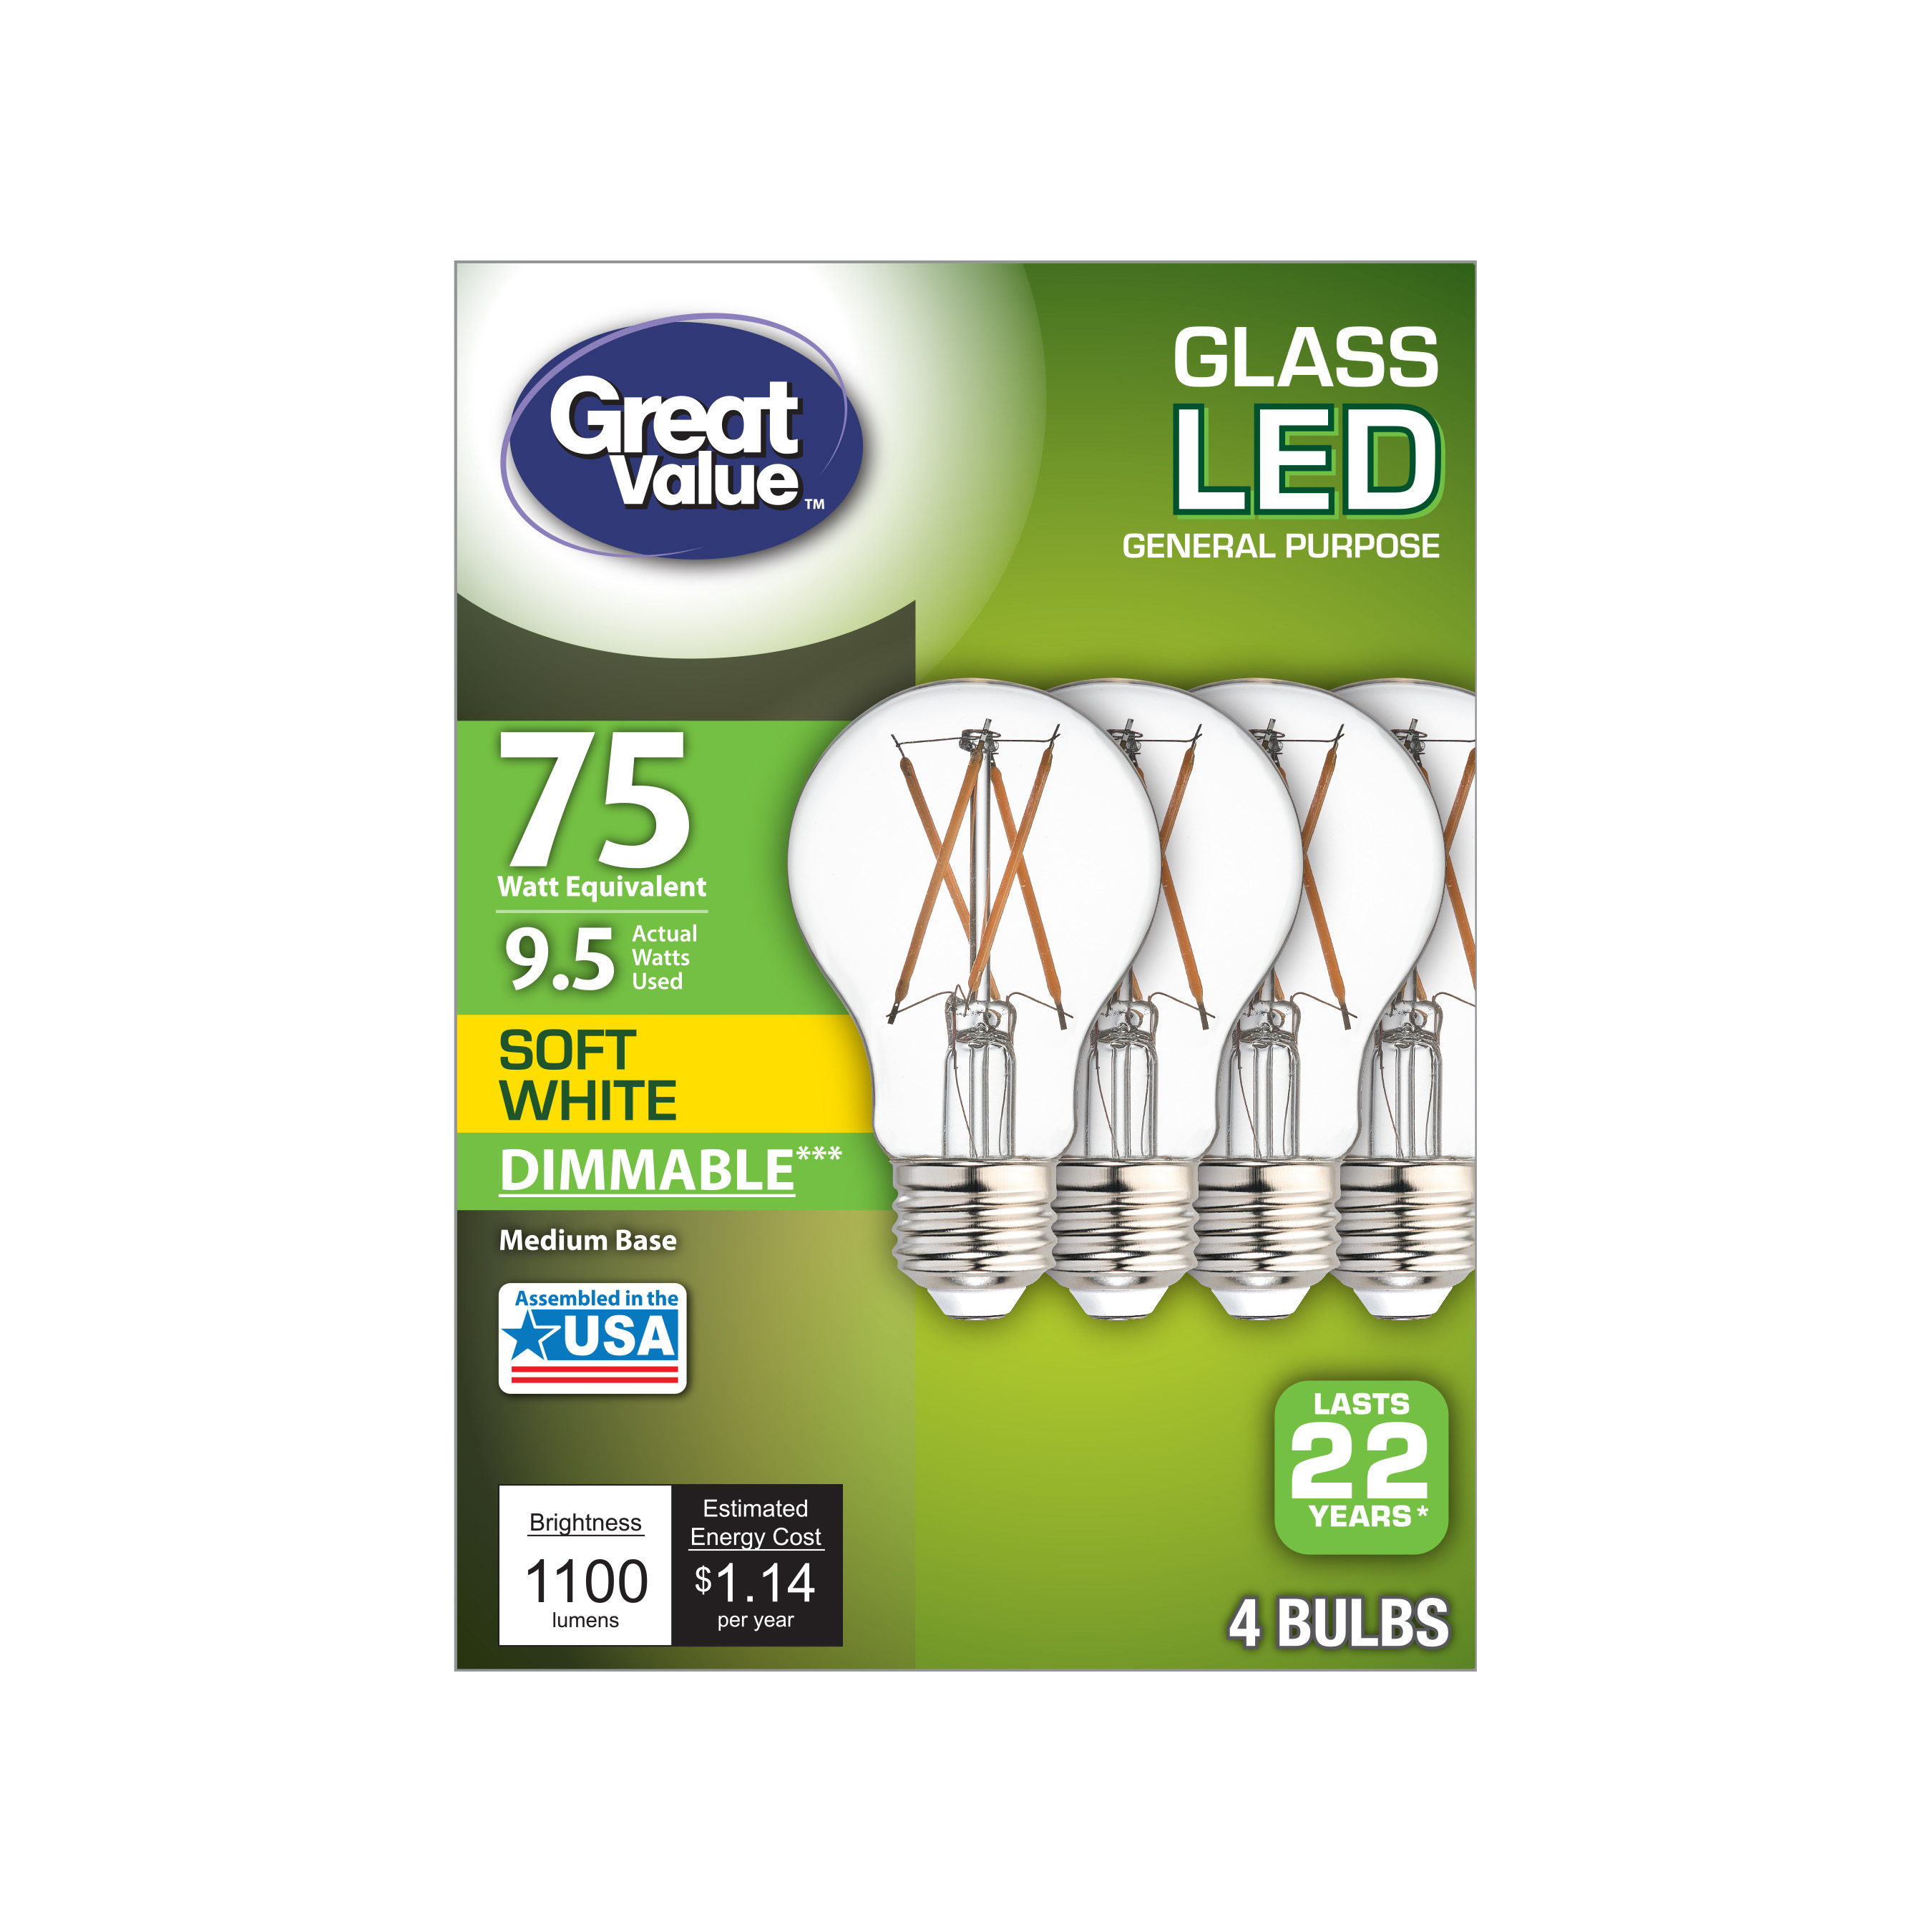 Great Value LED, 9.5W (75W Equivalent) Soft White Color, Clear Bulb, 22 Year Life, E26 Medium Base, Dimmable, 4pk Light Bulbs